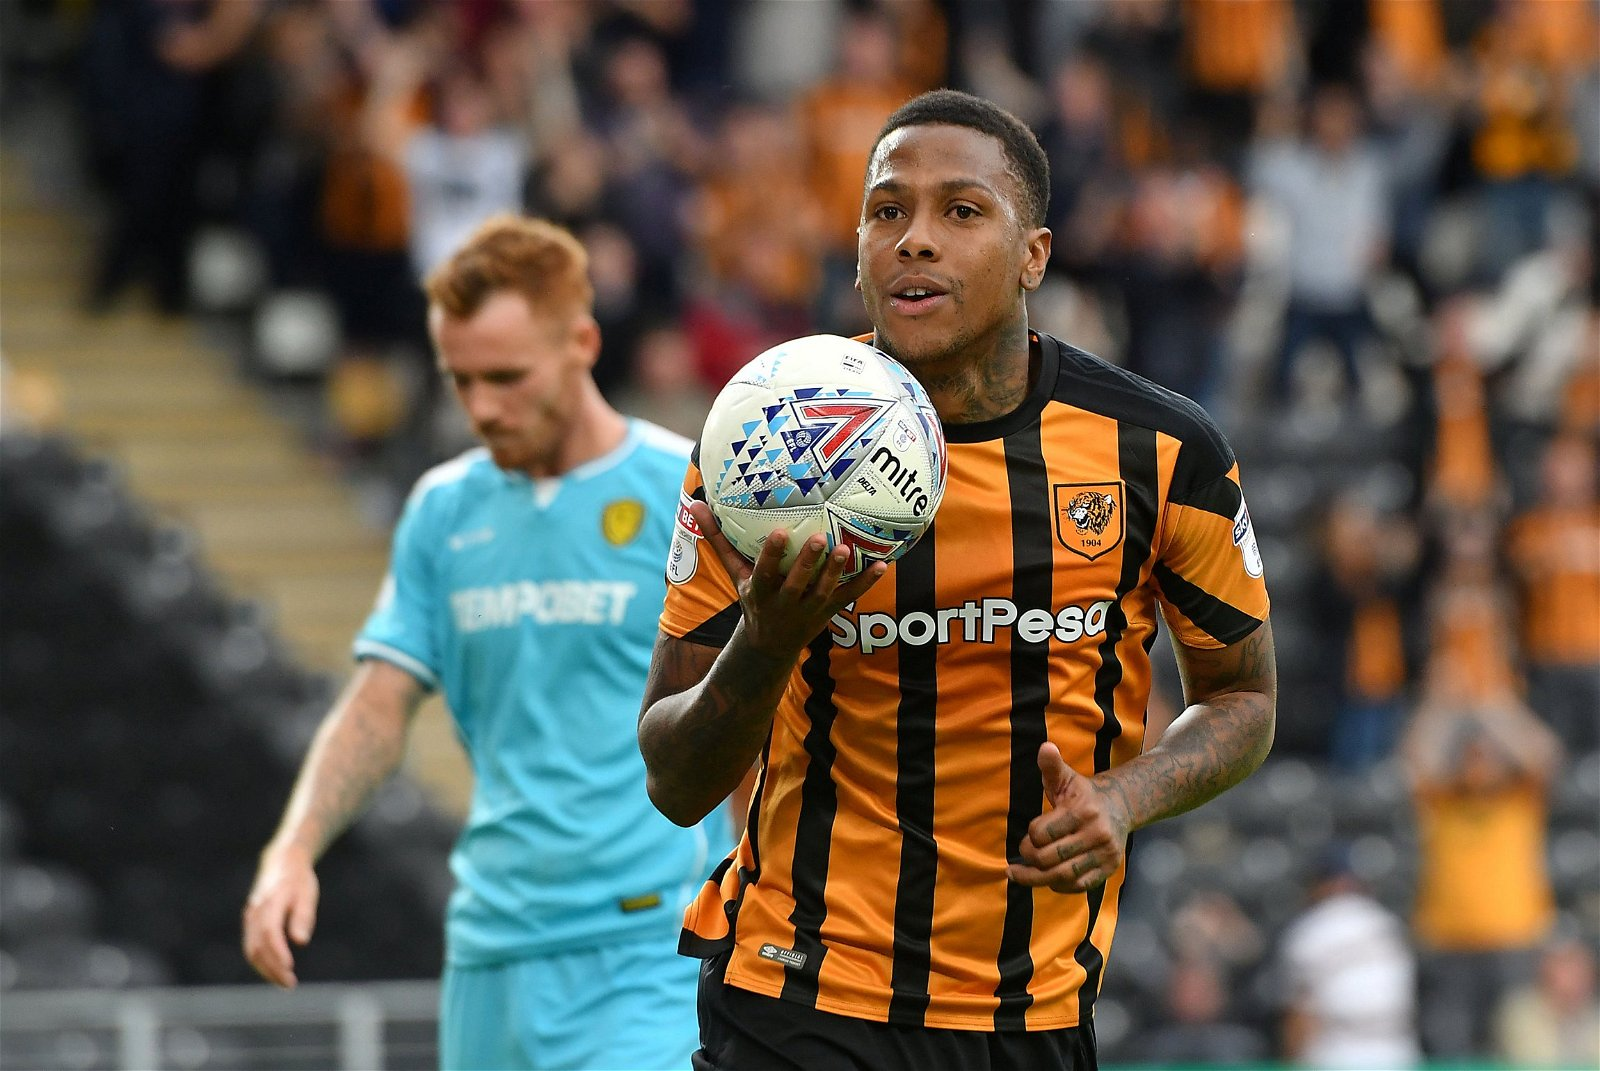 Abel Hernandez grabs the ball after scoring